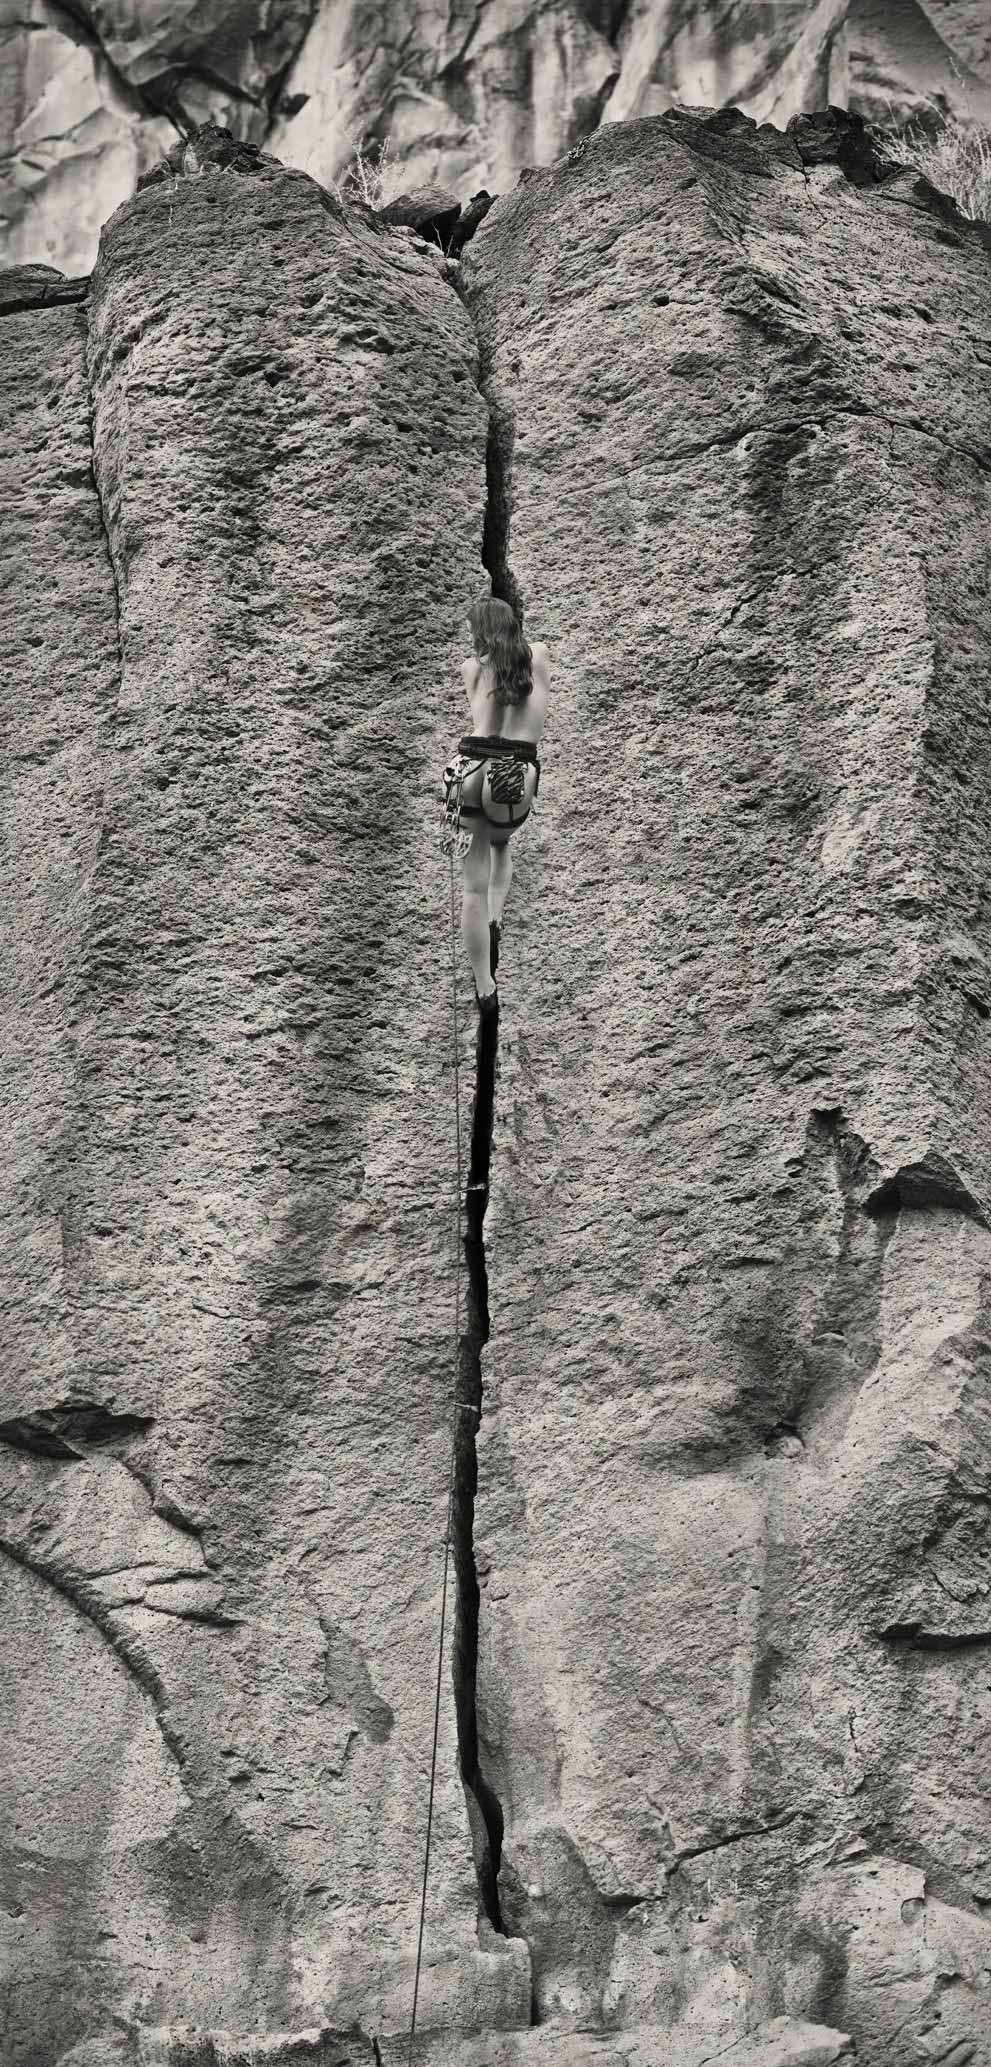 Arizona-Crack-Climb_Sepia_Post